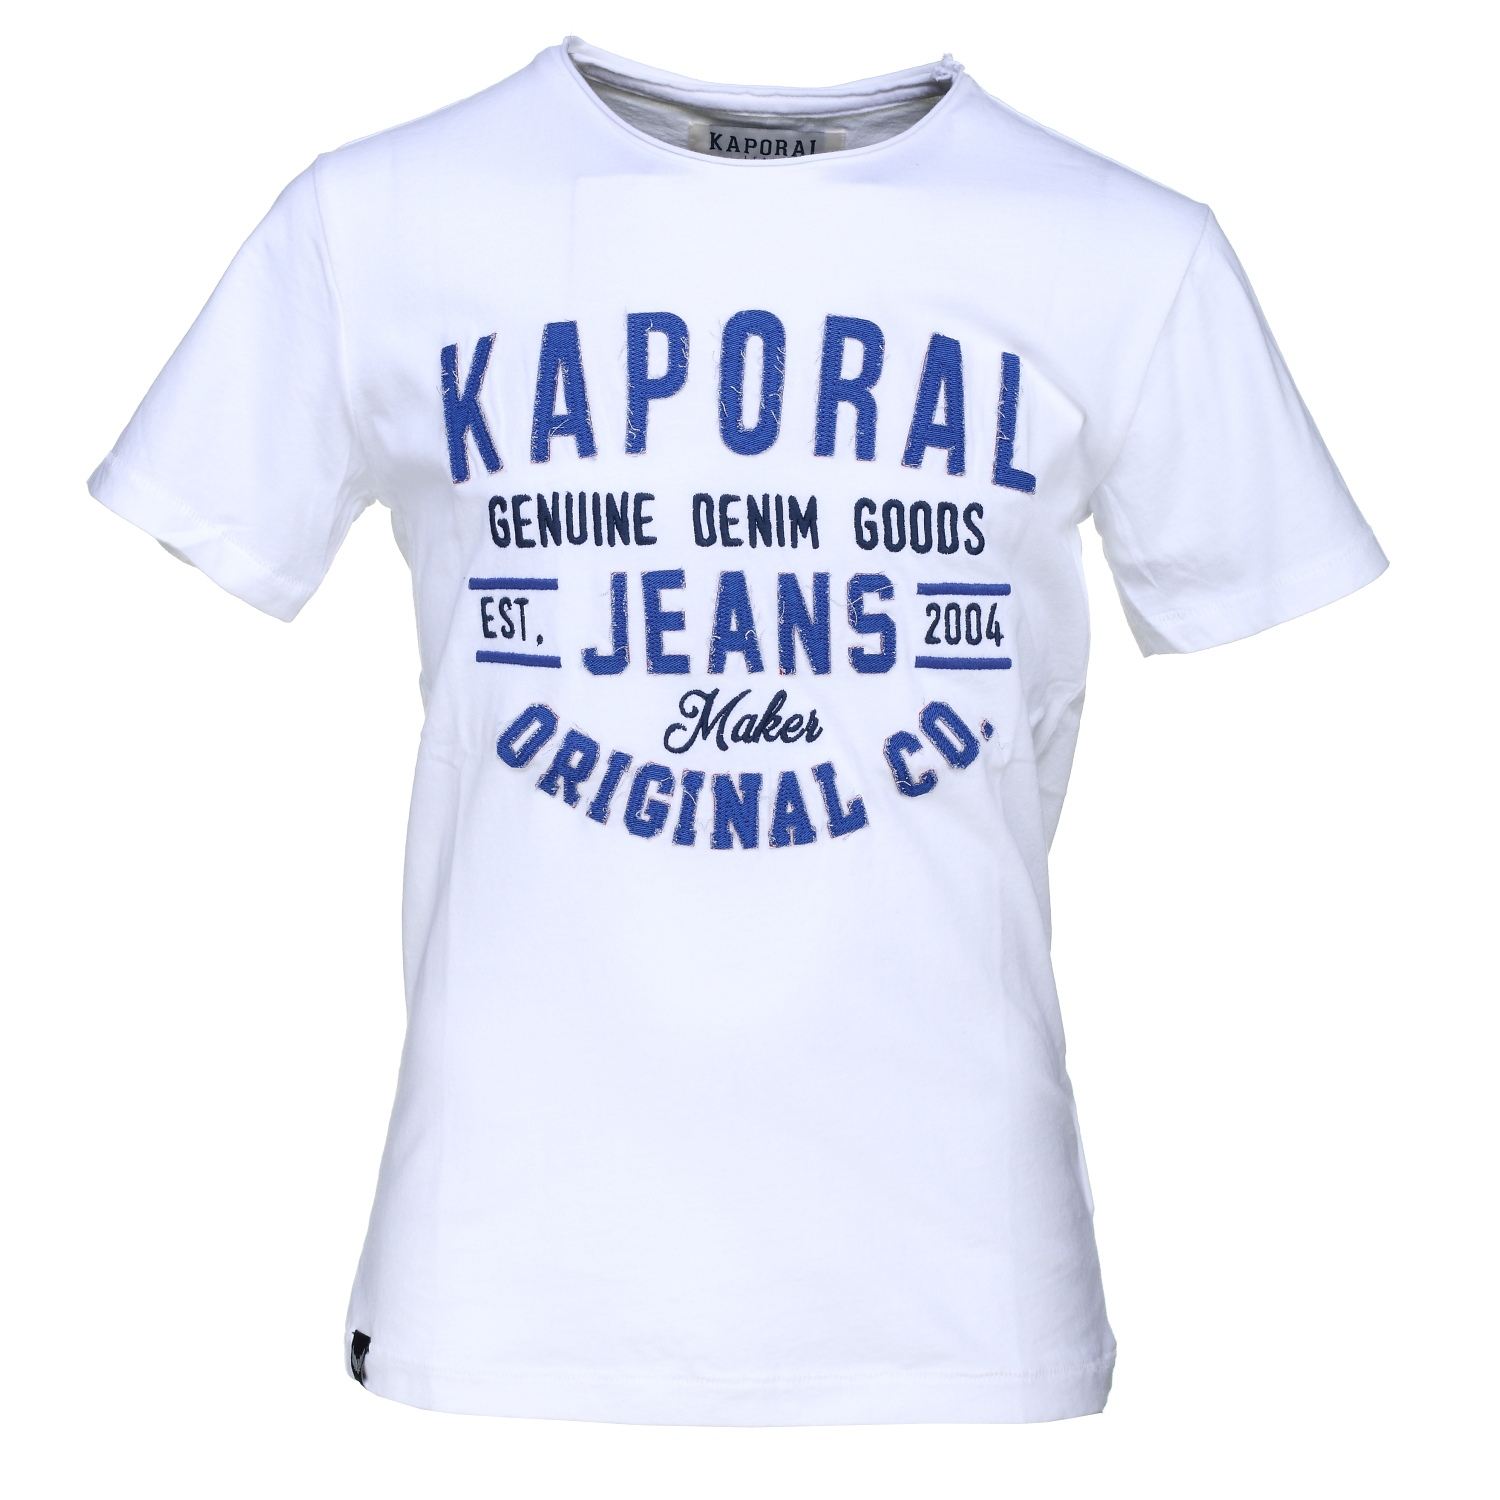 http://www.leadermode.com/141983/kaporal-riri-optical-white.jpg